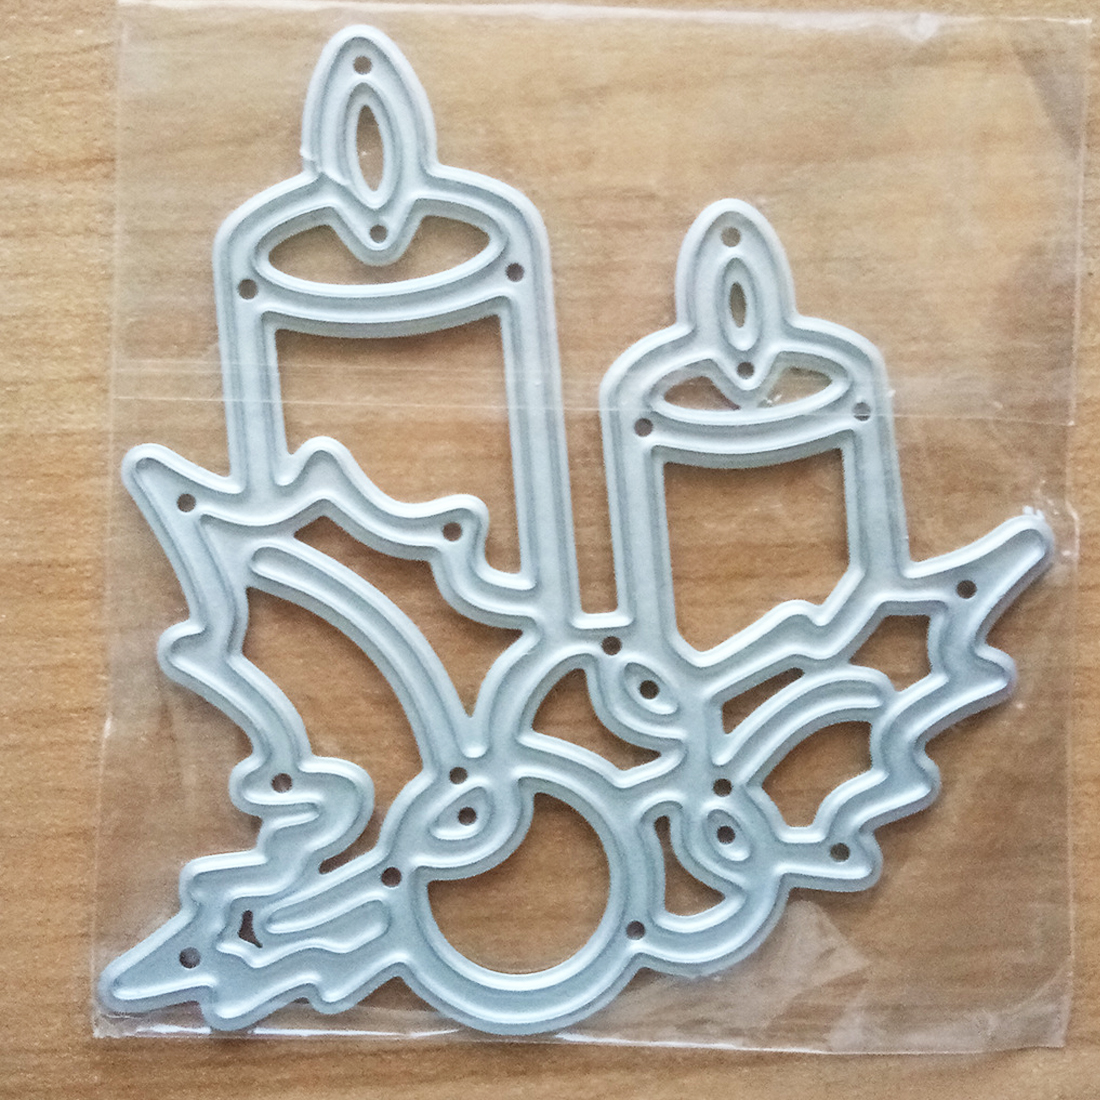 SDR Metal Cutting Dies Christmas Burning Candle Stencils For DIY Embossing Scrapbook Album Paper Card Craft